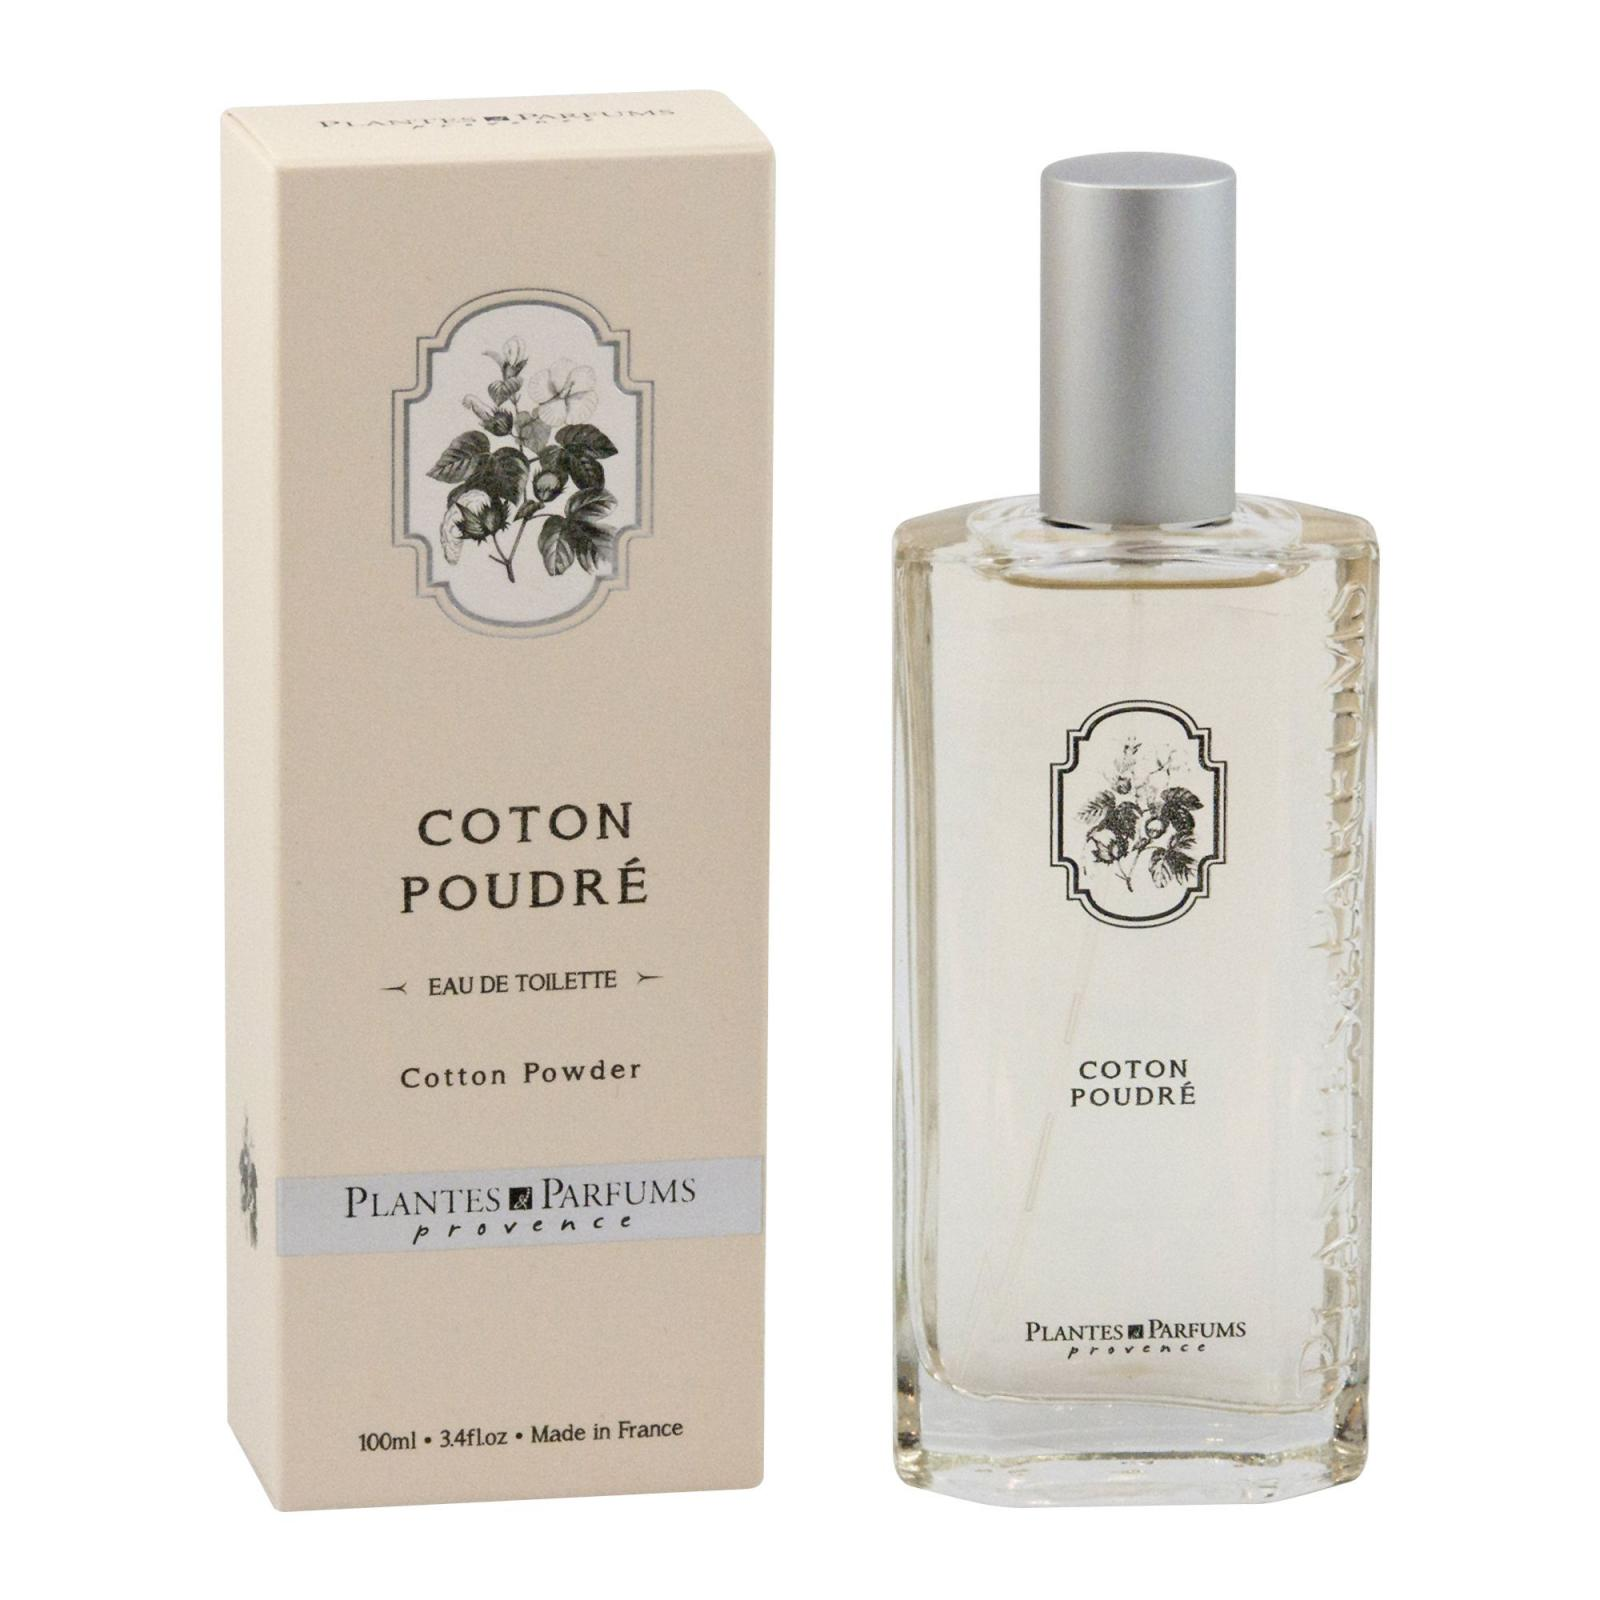 Plantes et Parfums EDT Cotton Poudré